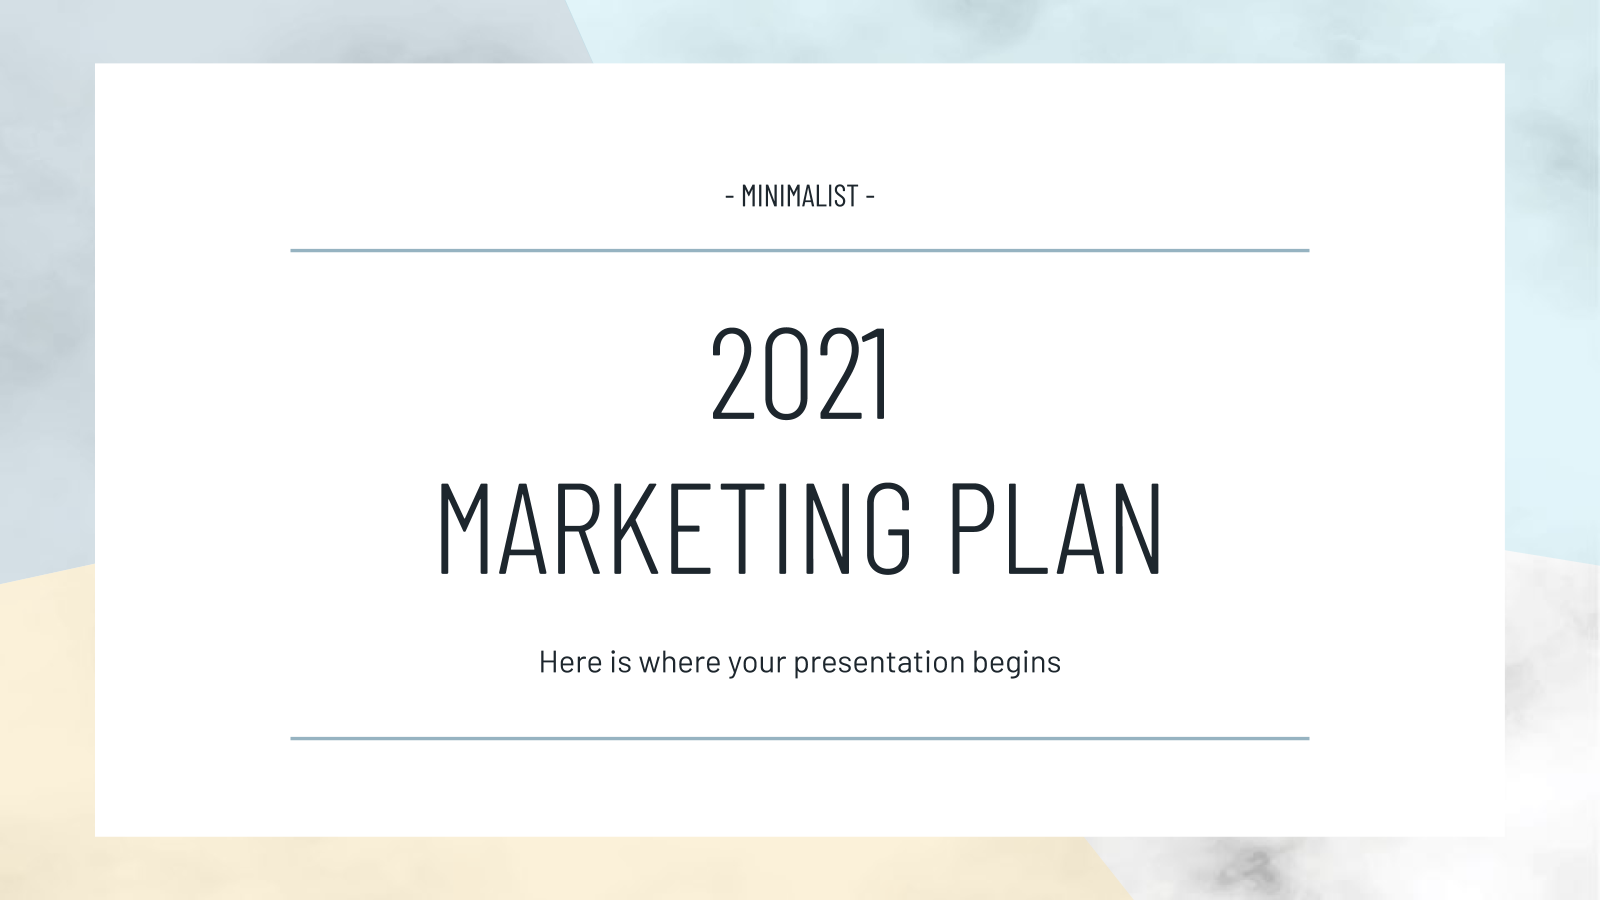 Plantilla de presentación Plan de marketing para 2021